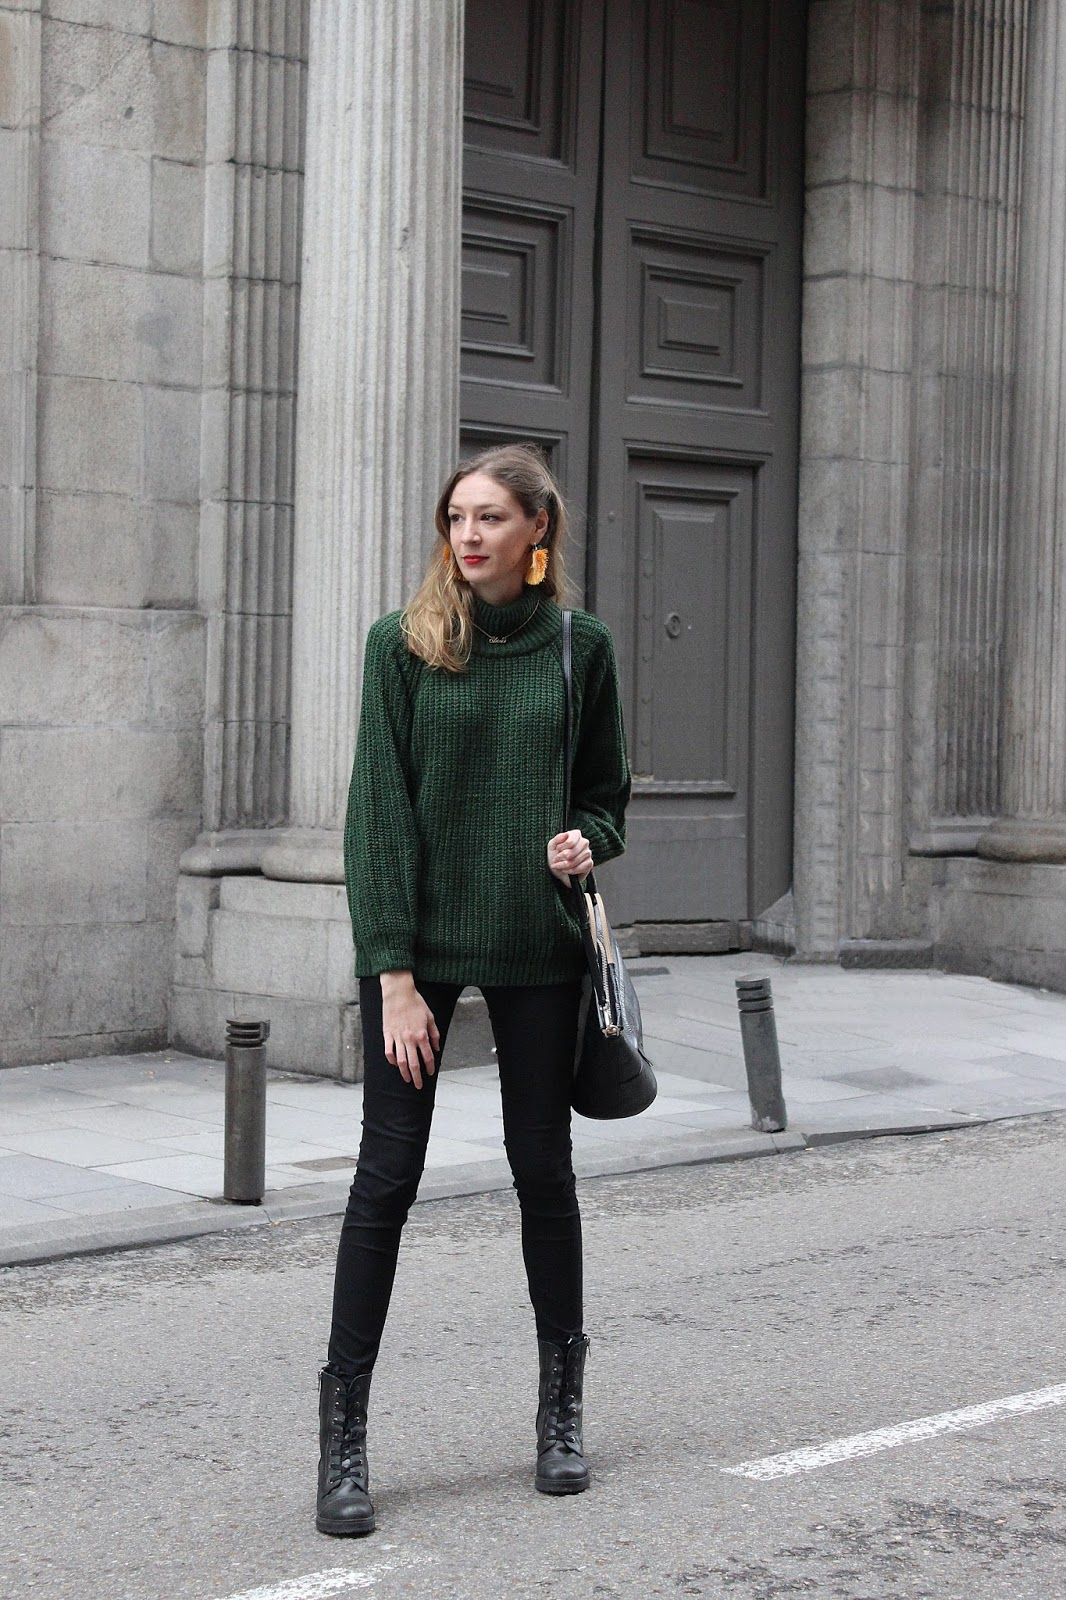 militar-boots-green-turtle-neck-doctor-maxibag-street-style-zaful